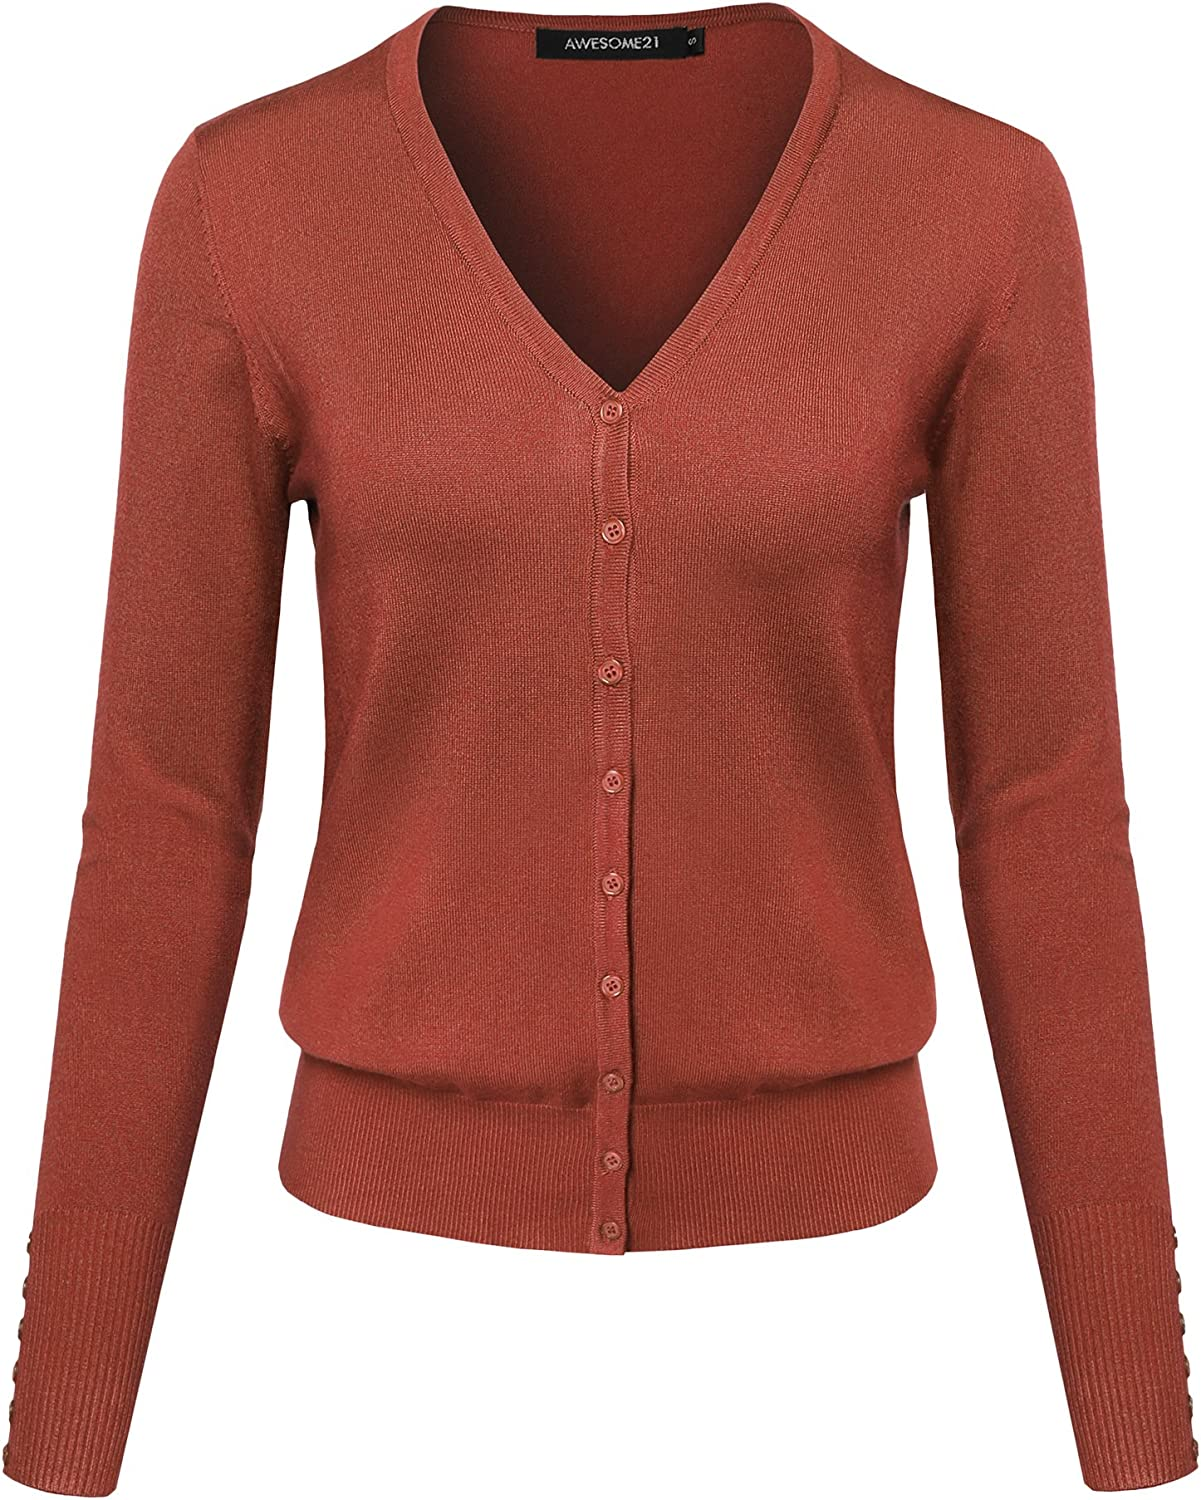 Women's Basic Solid V-Neck Button Closure Long Sleeves Sweater Cardigan